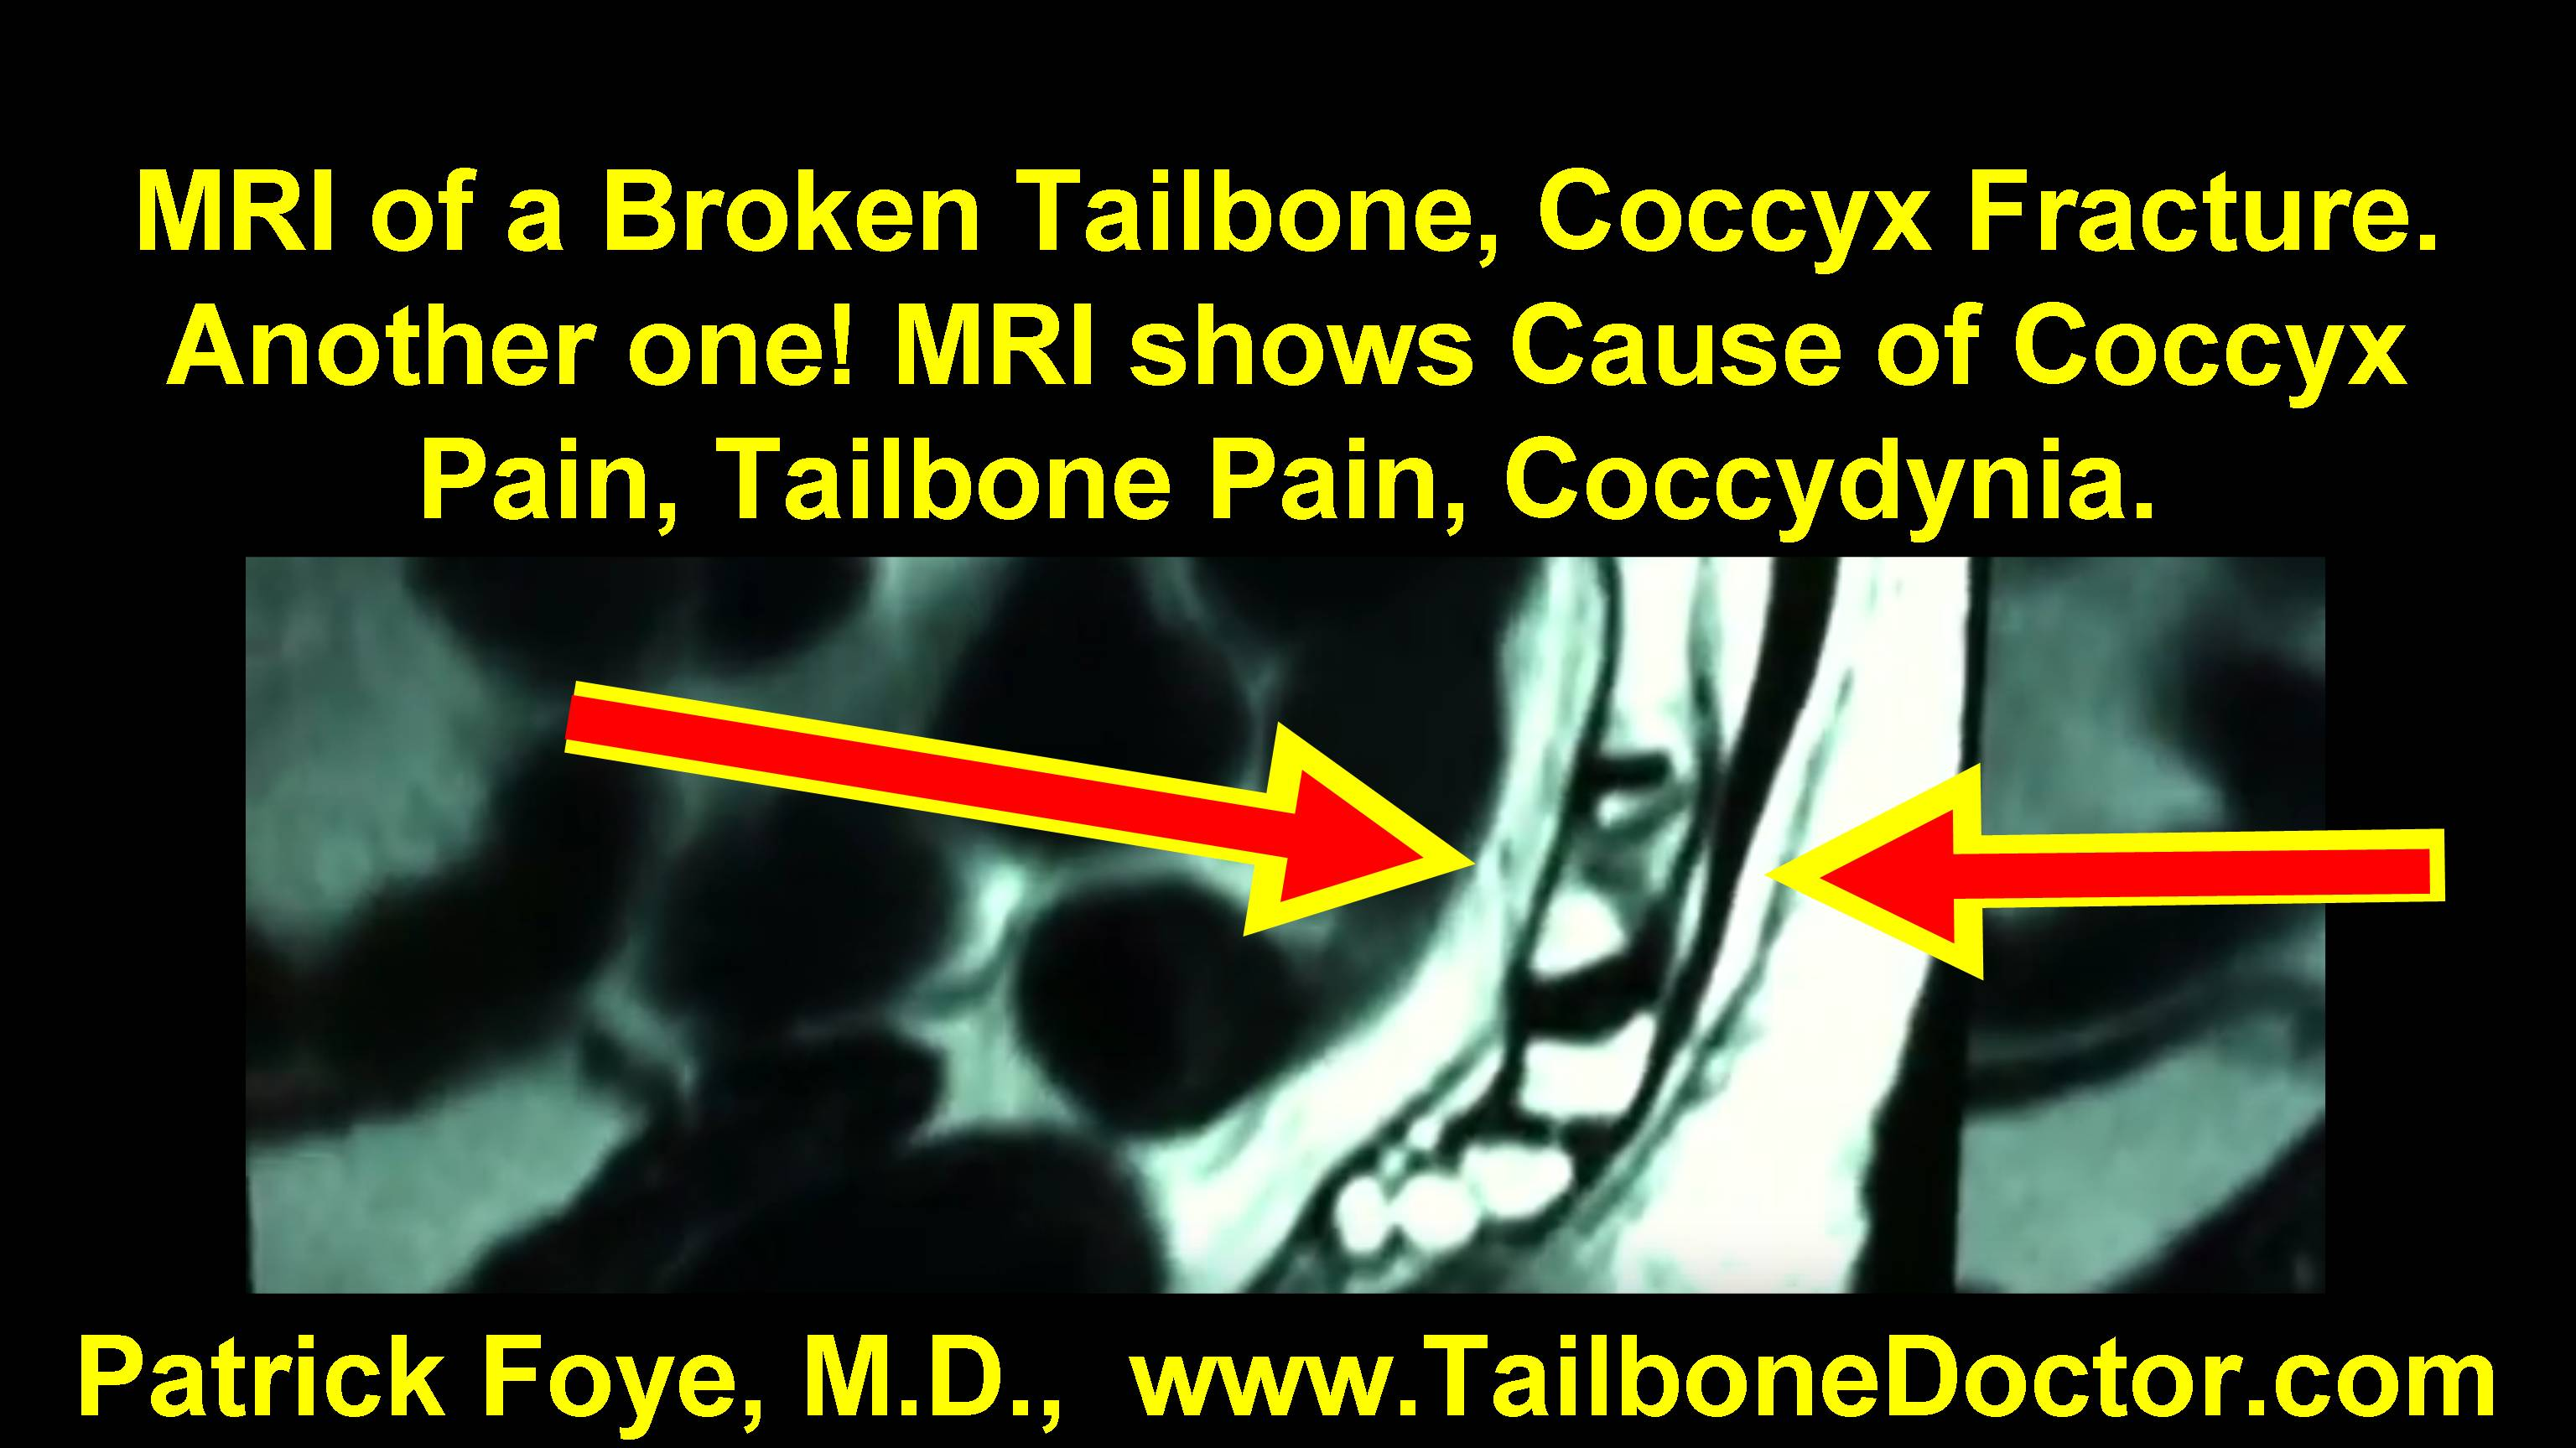 MRI of Broken Tailbone, Coccyx Fracture  See what the